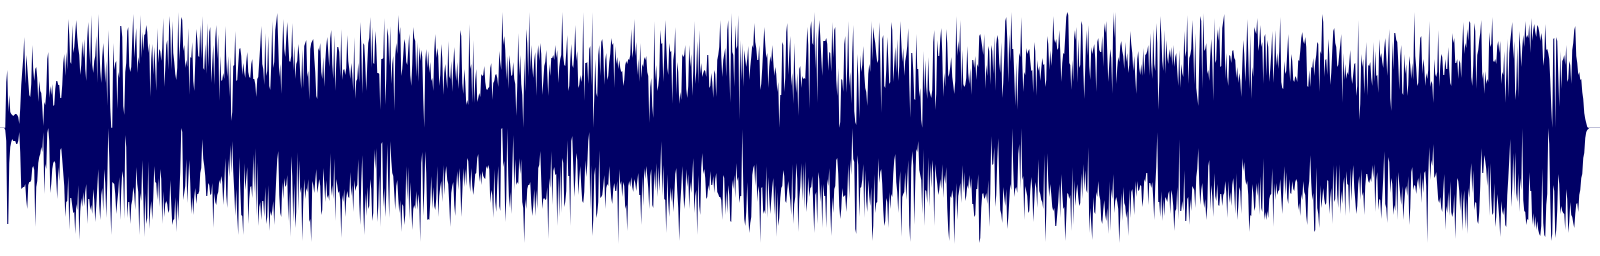 waveform of track #159278